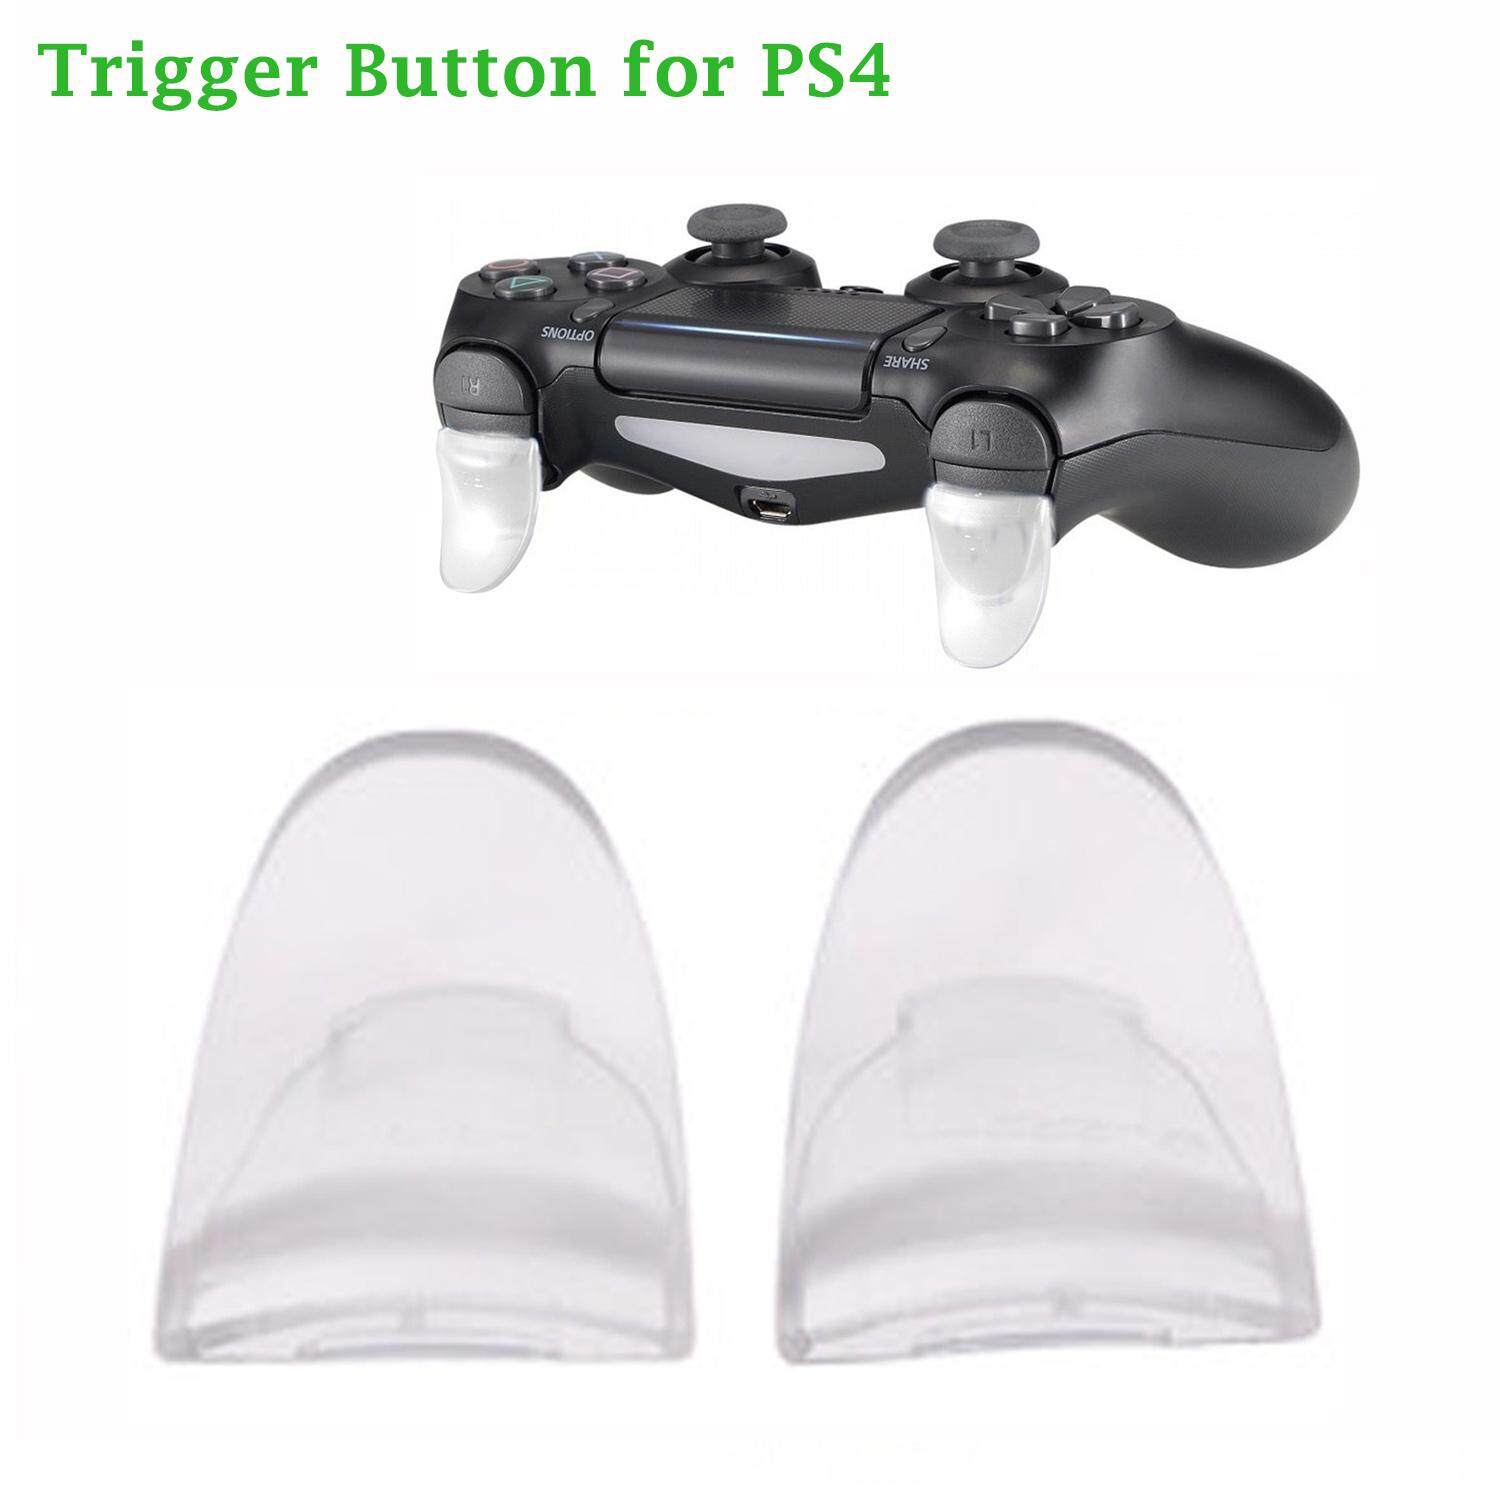 1 Pair Portable Replacement Plastic L2 R2 Extended Trigger Button Set Kit Compatible with PS4 Controller